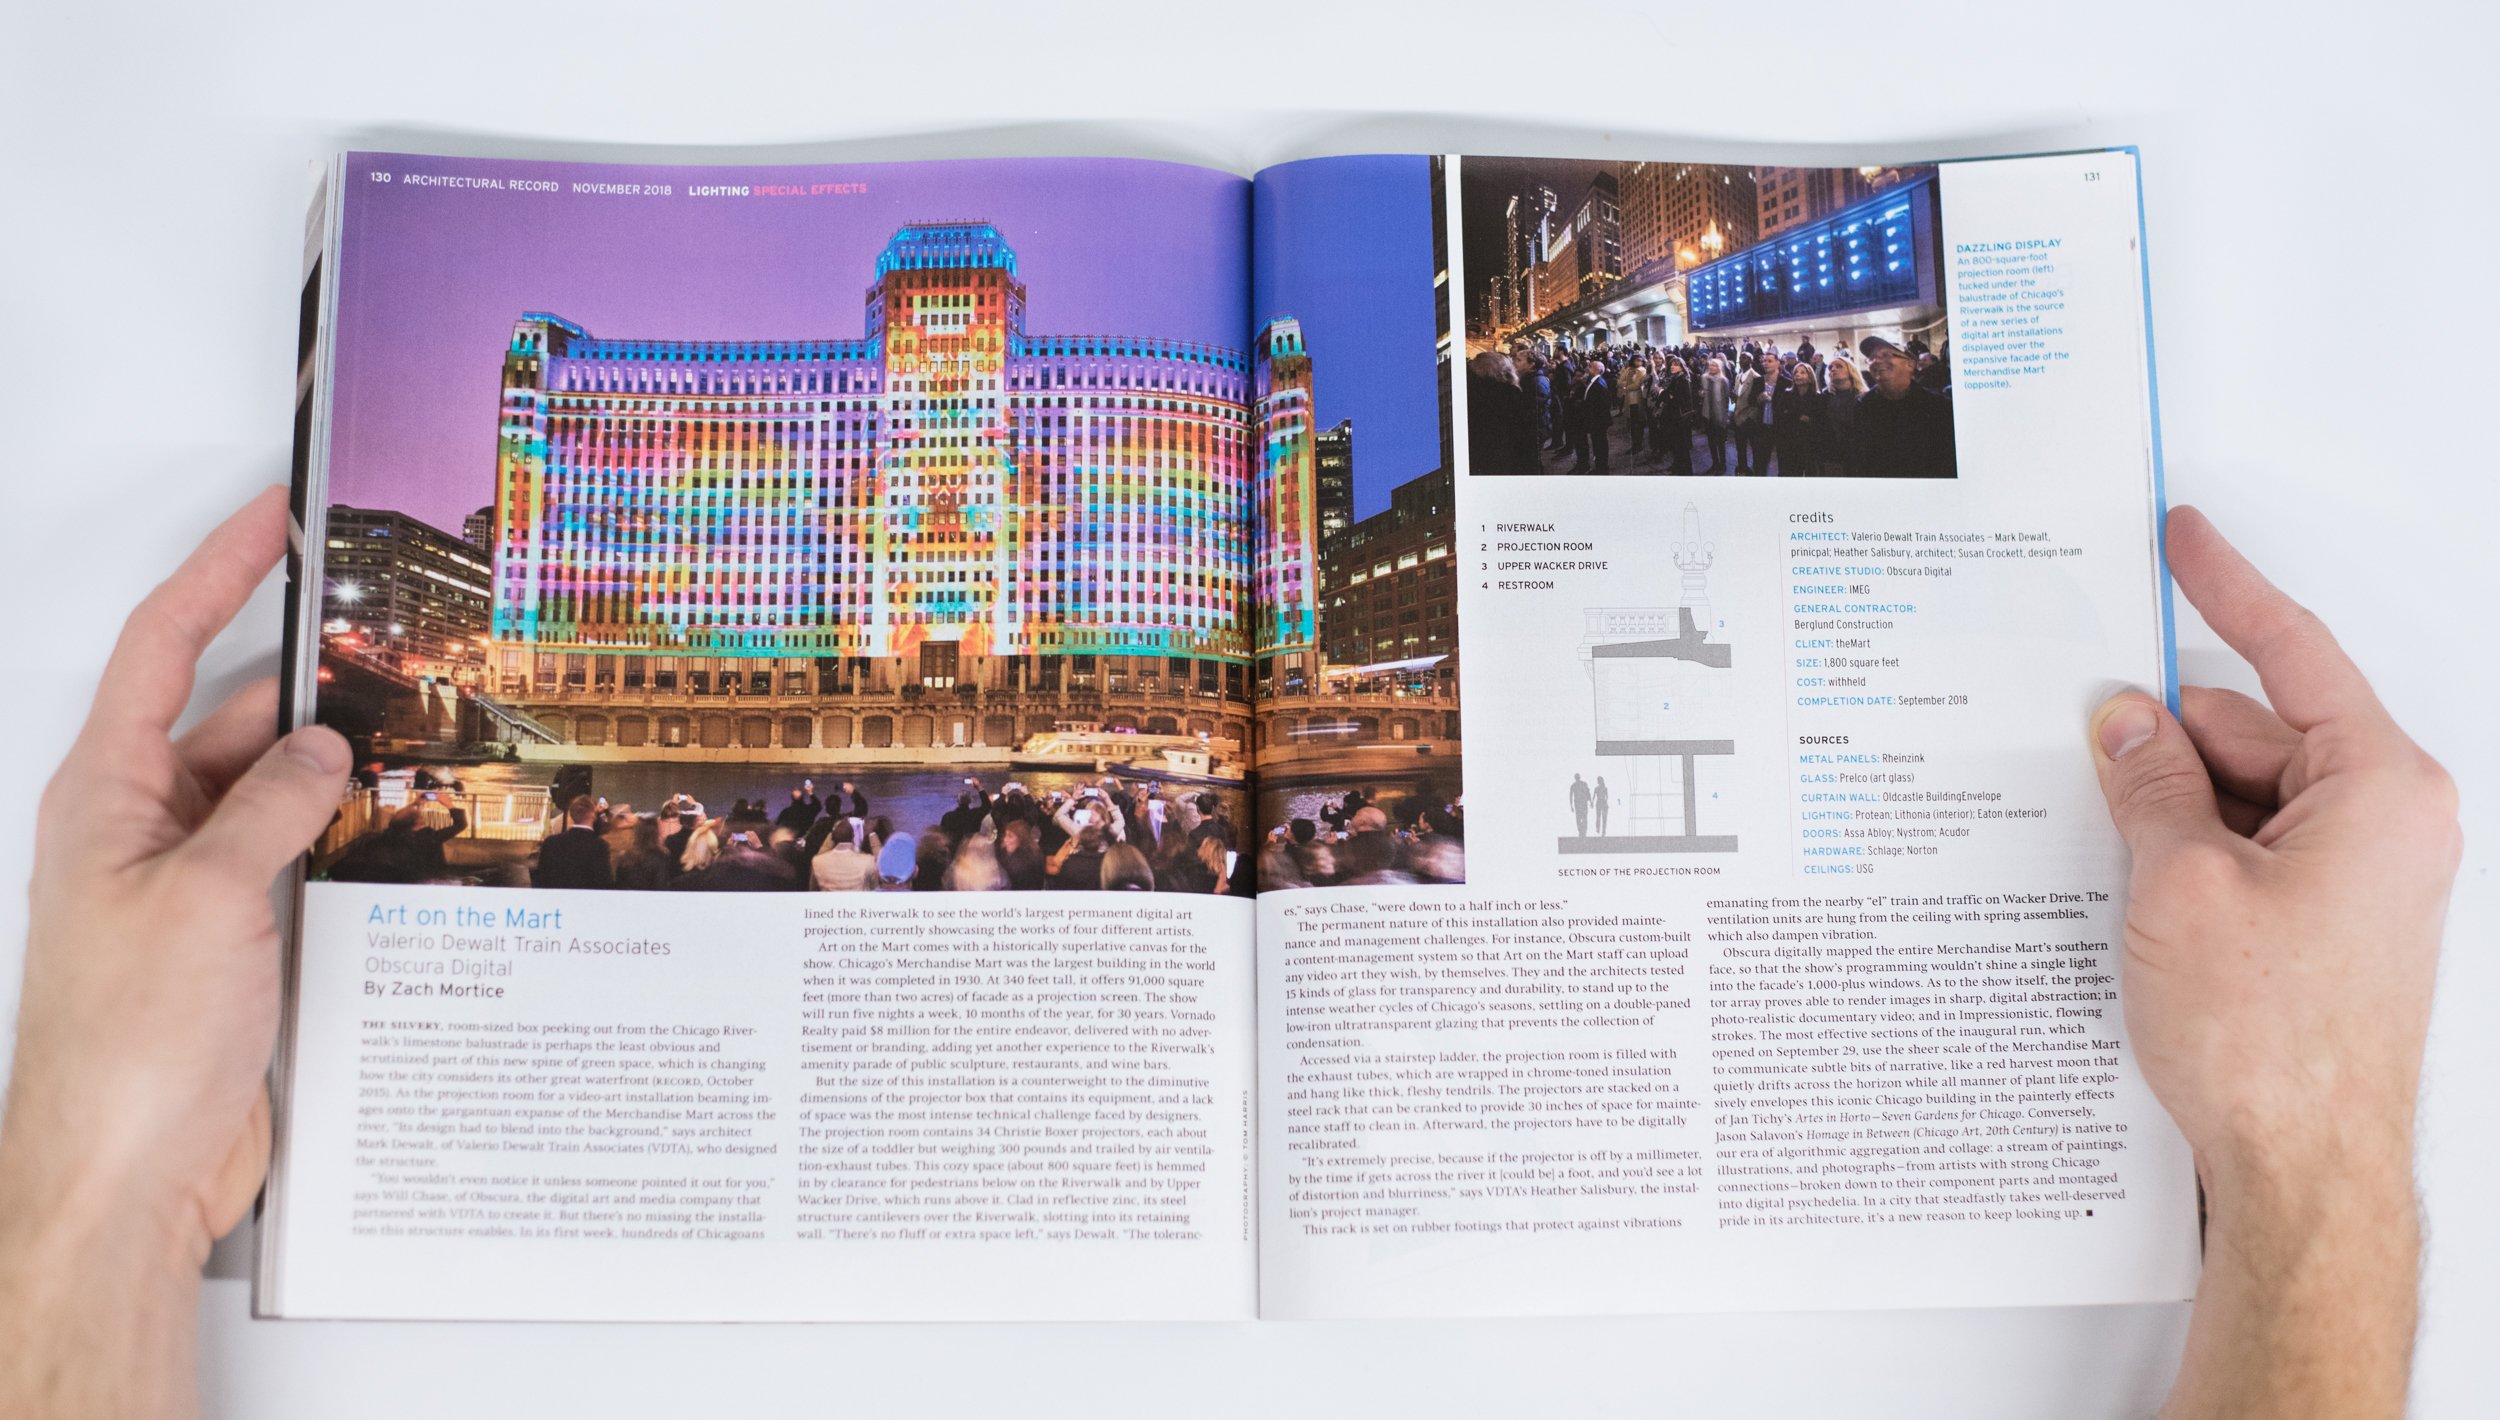 Art on theMart featured in Architectural Record Magazine